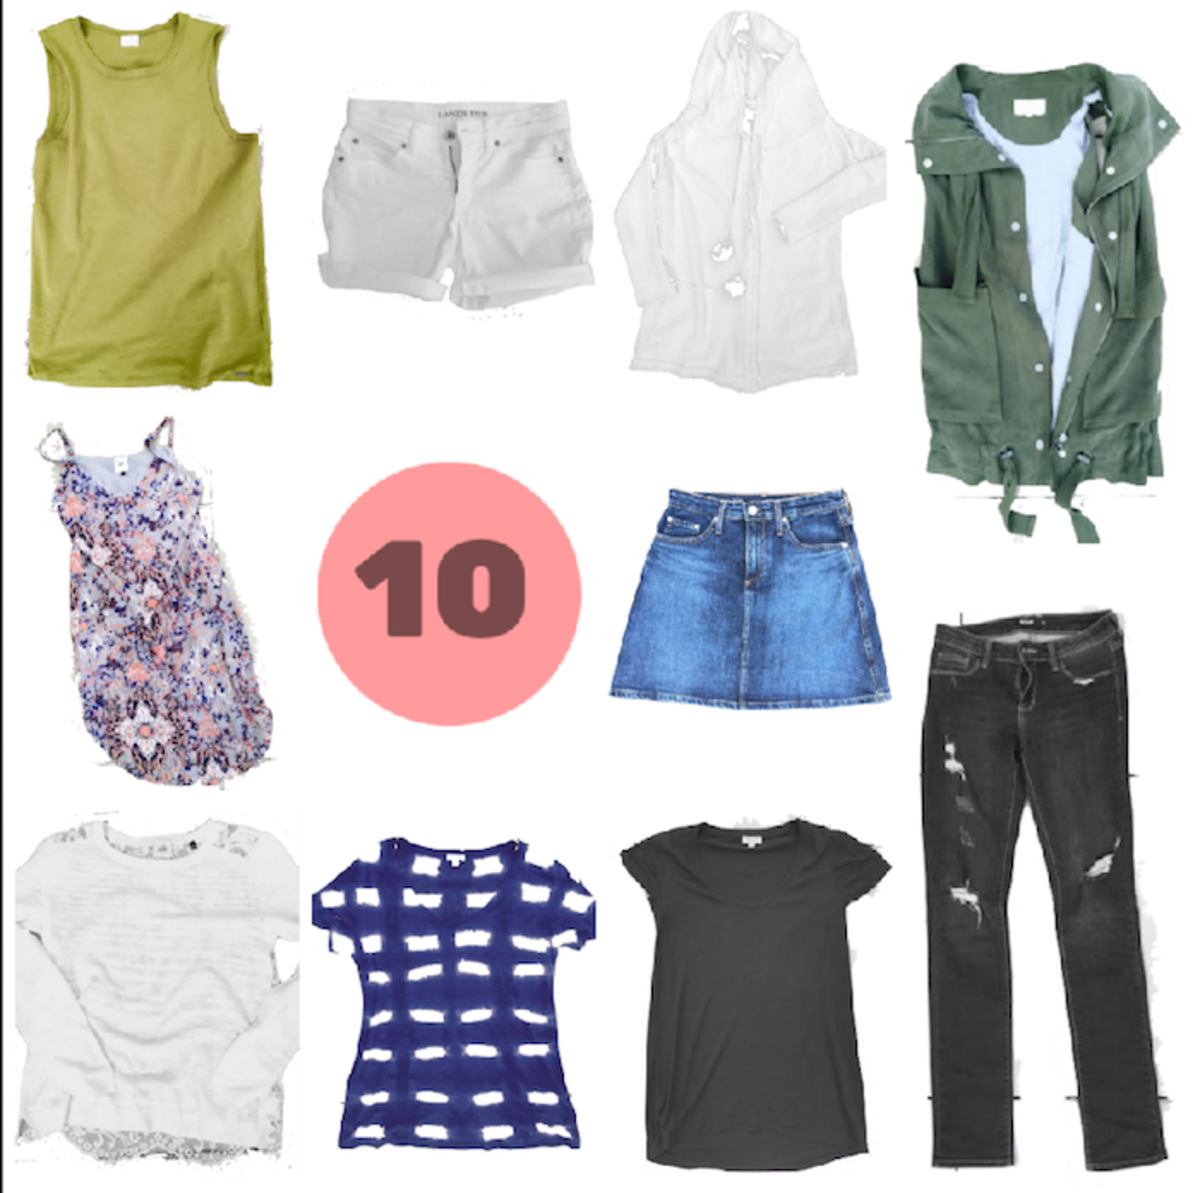 10 pieces spring capsule wardrobe